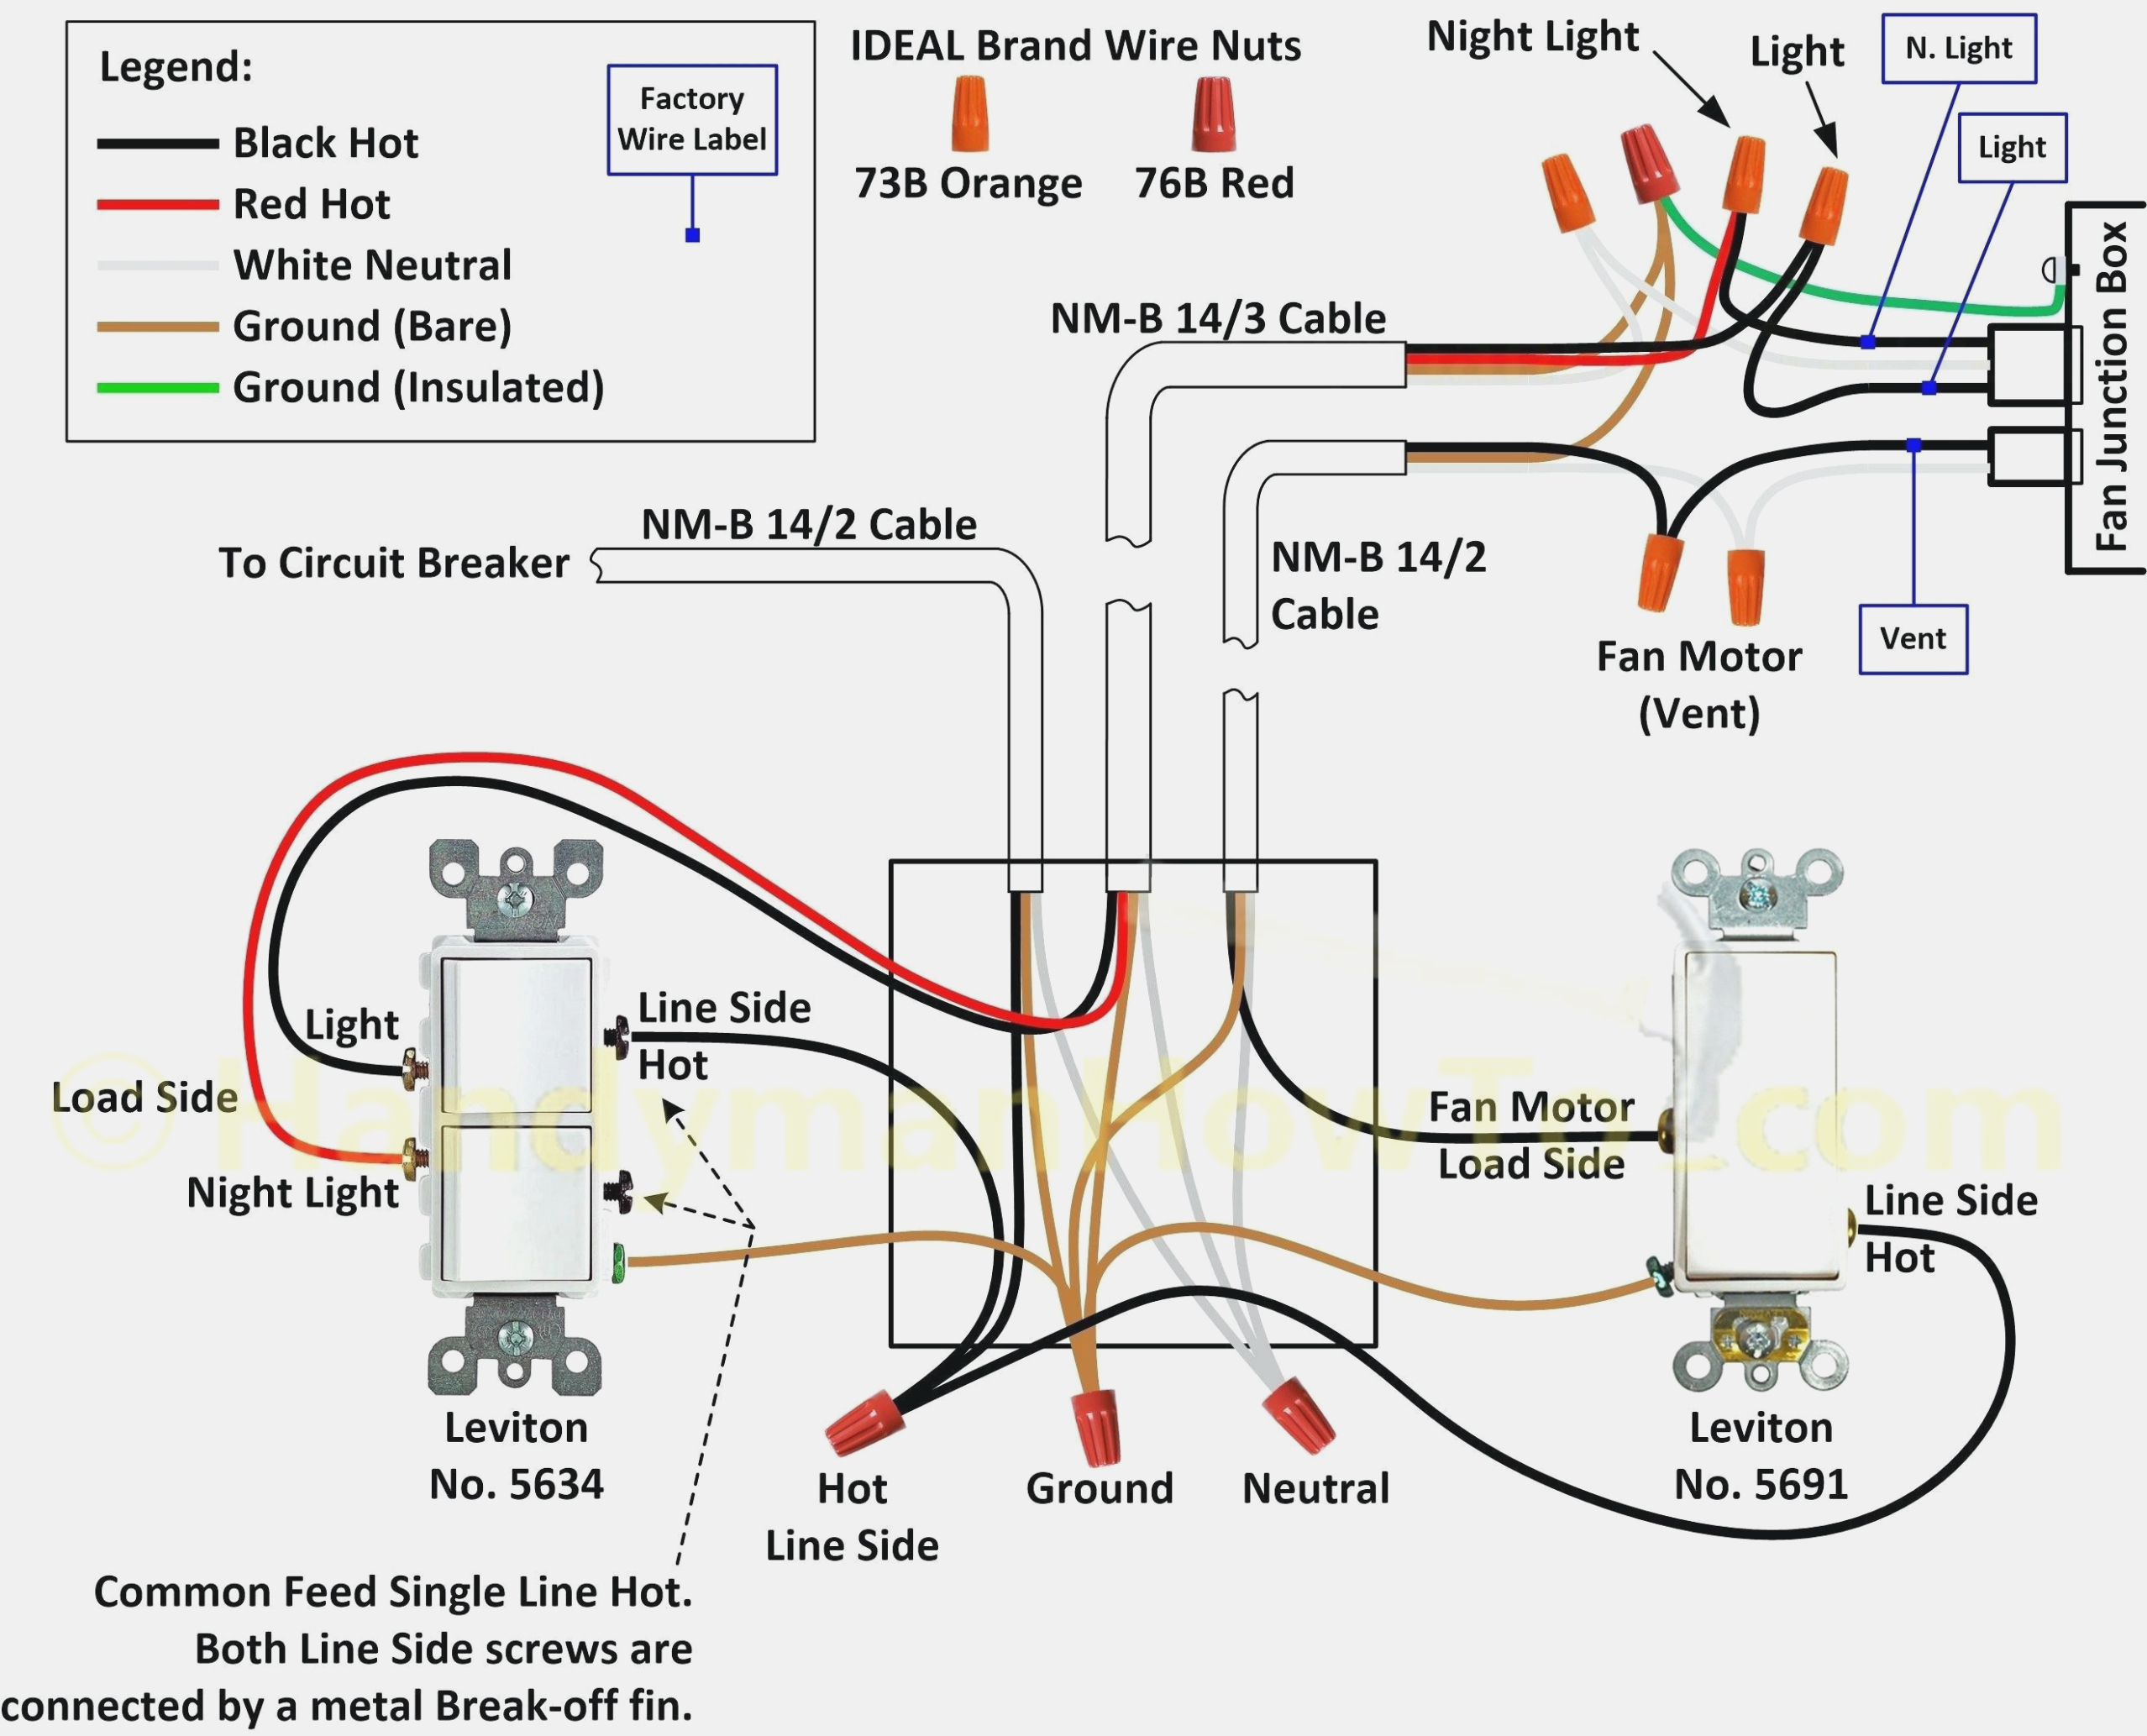 Graphix Lutron Wiring Diagram - Wiring Diagram Name - Lutron 3 Way Dimmer Switch Wiring Diagram